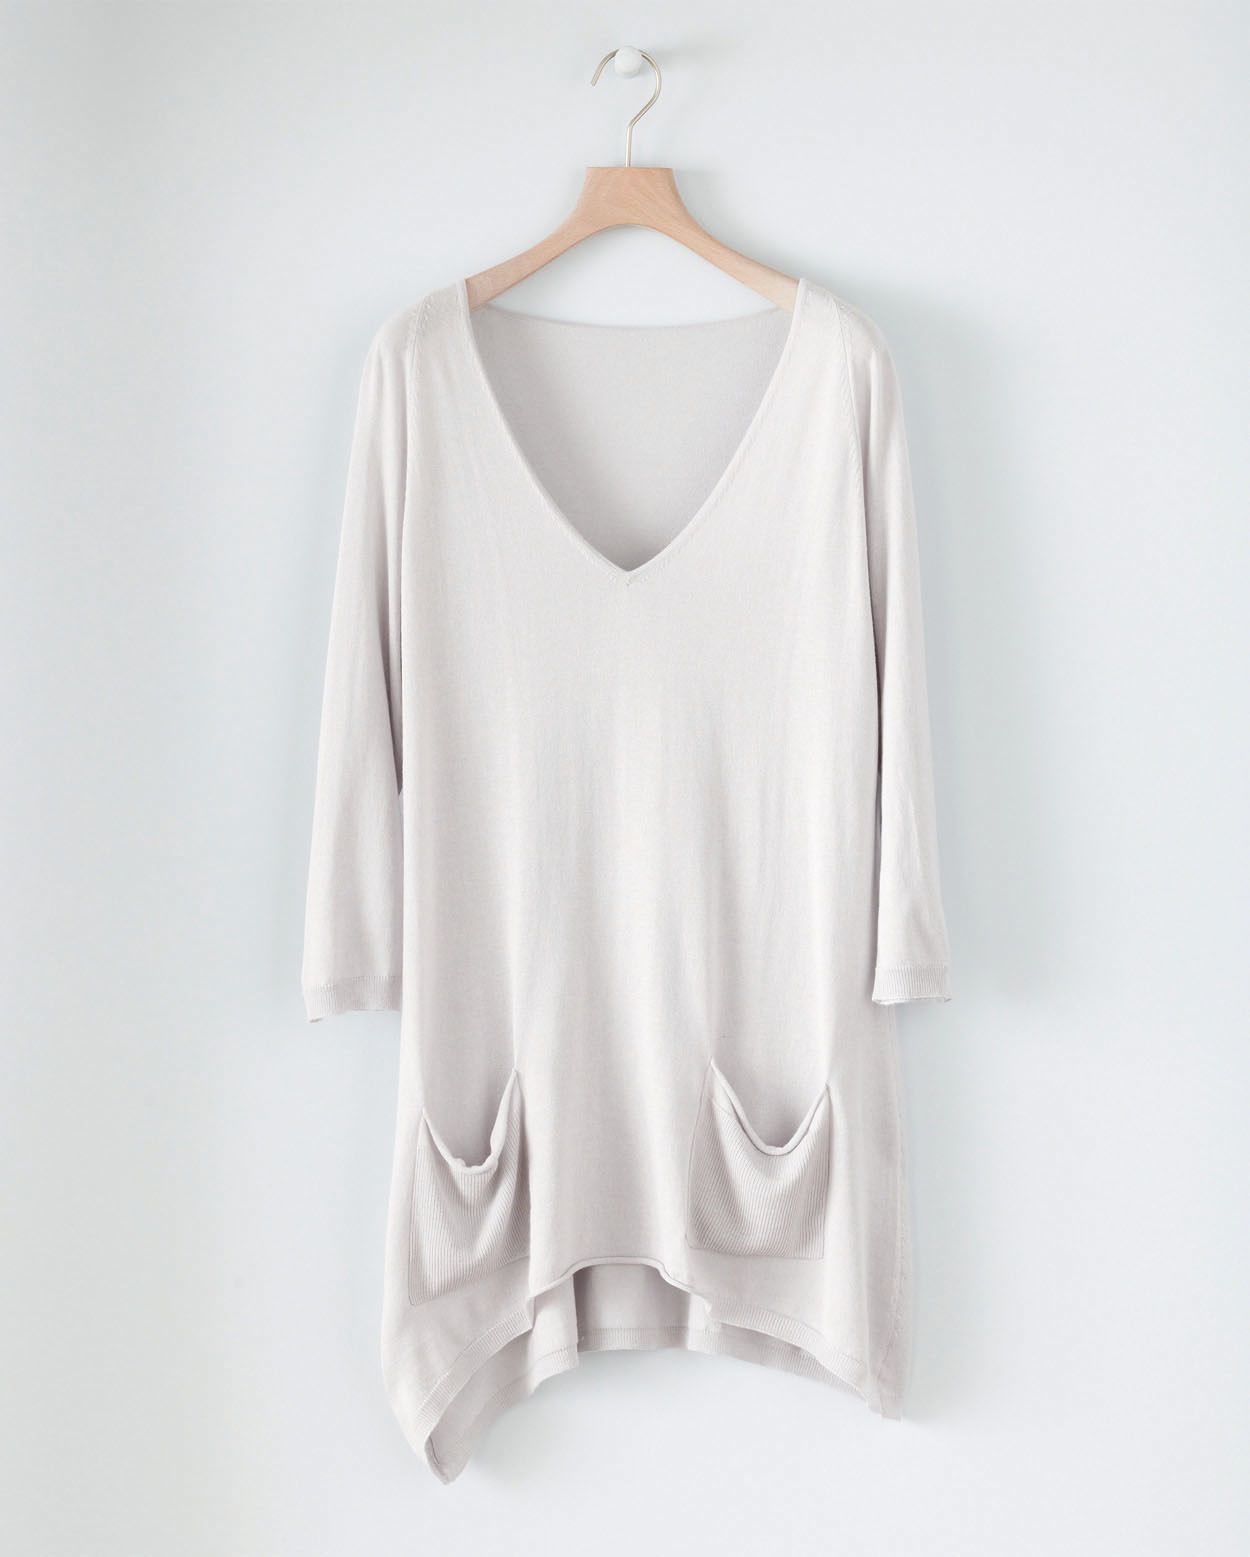 Silk Cashmere Dipped Hem Sweater - wear it with leggings and boots for Fall